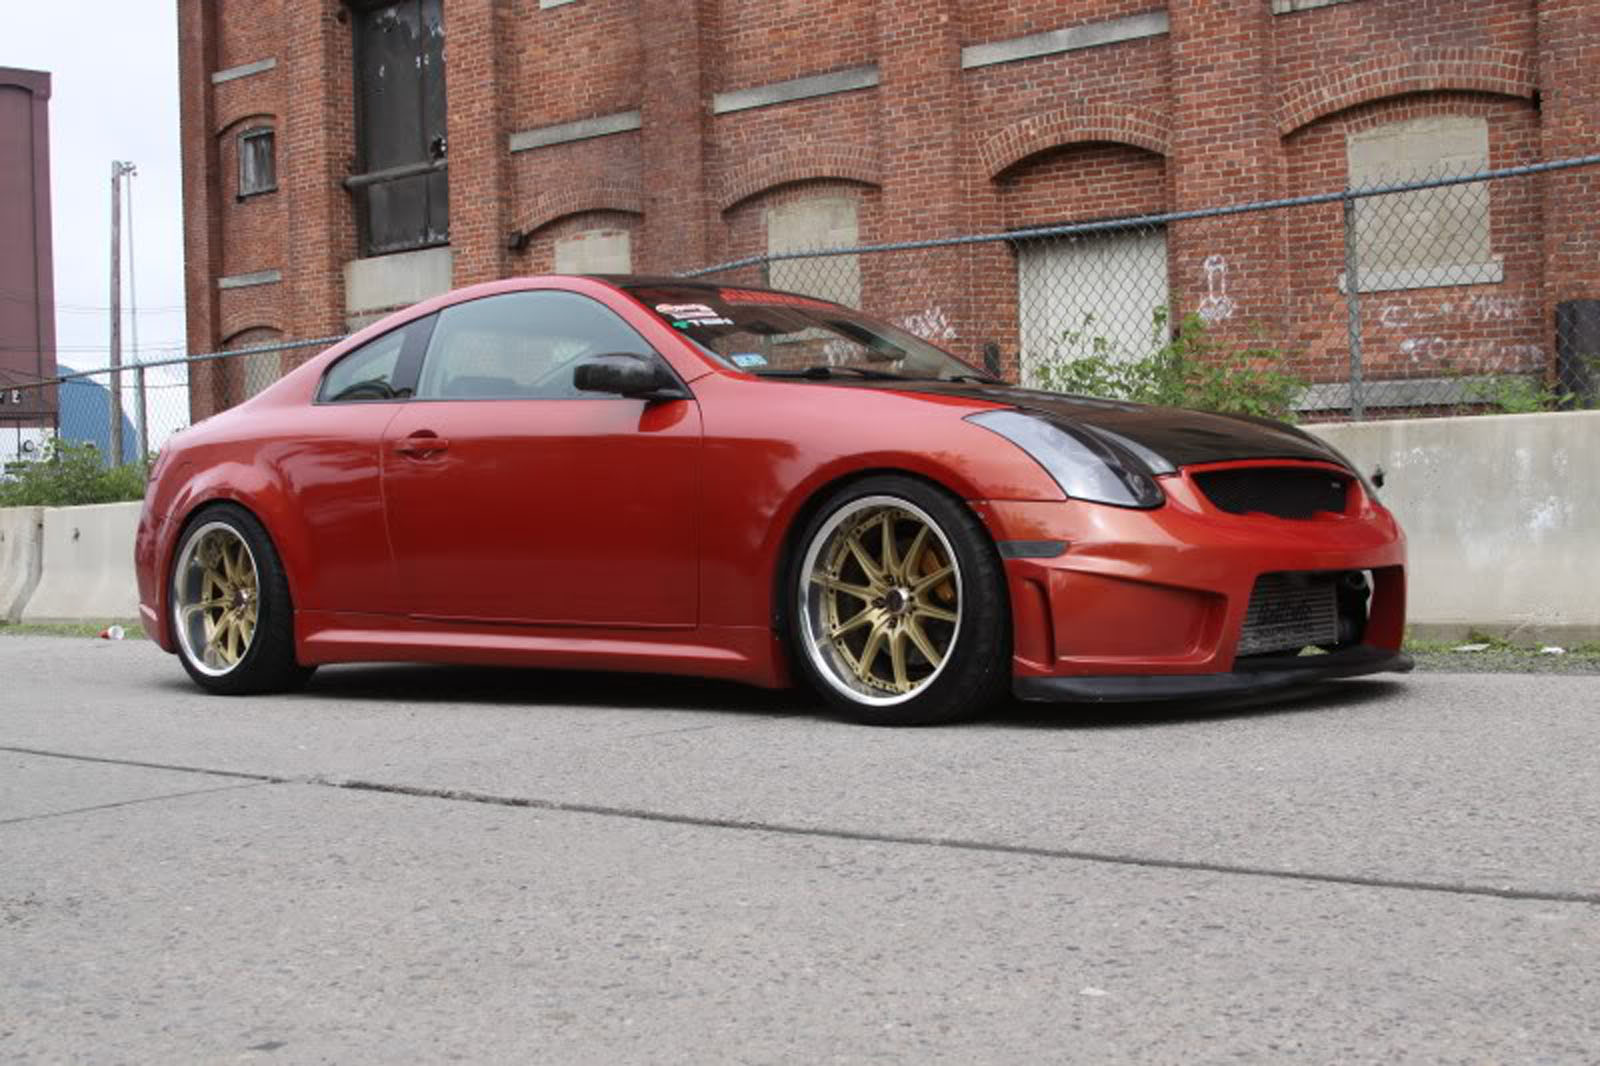 All Types infinity g35 2003 : infiniti g35 related images,start 400 - WeiLi Automotive Network